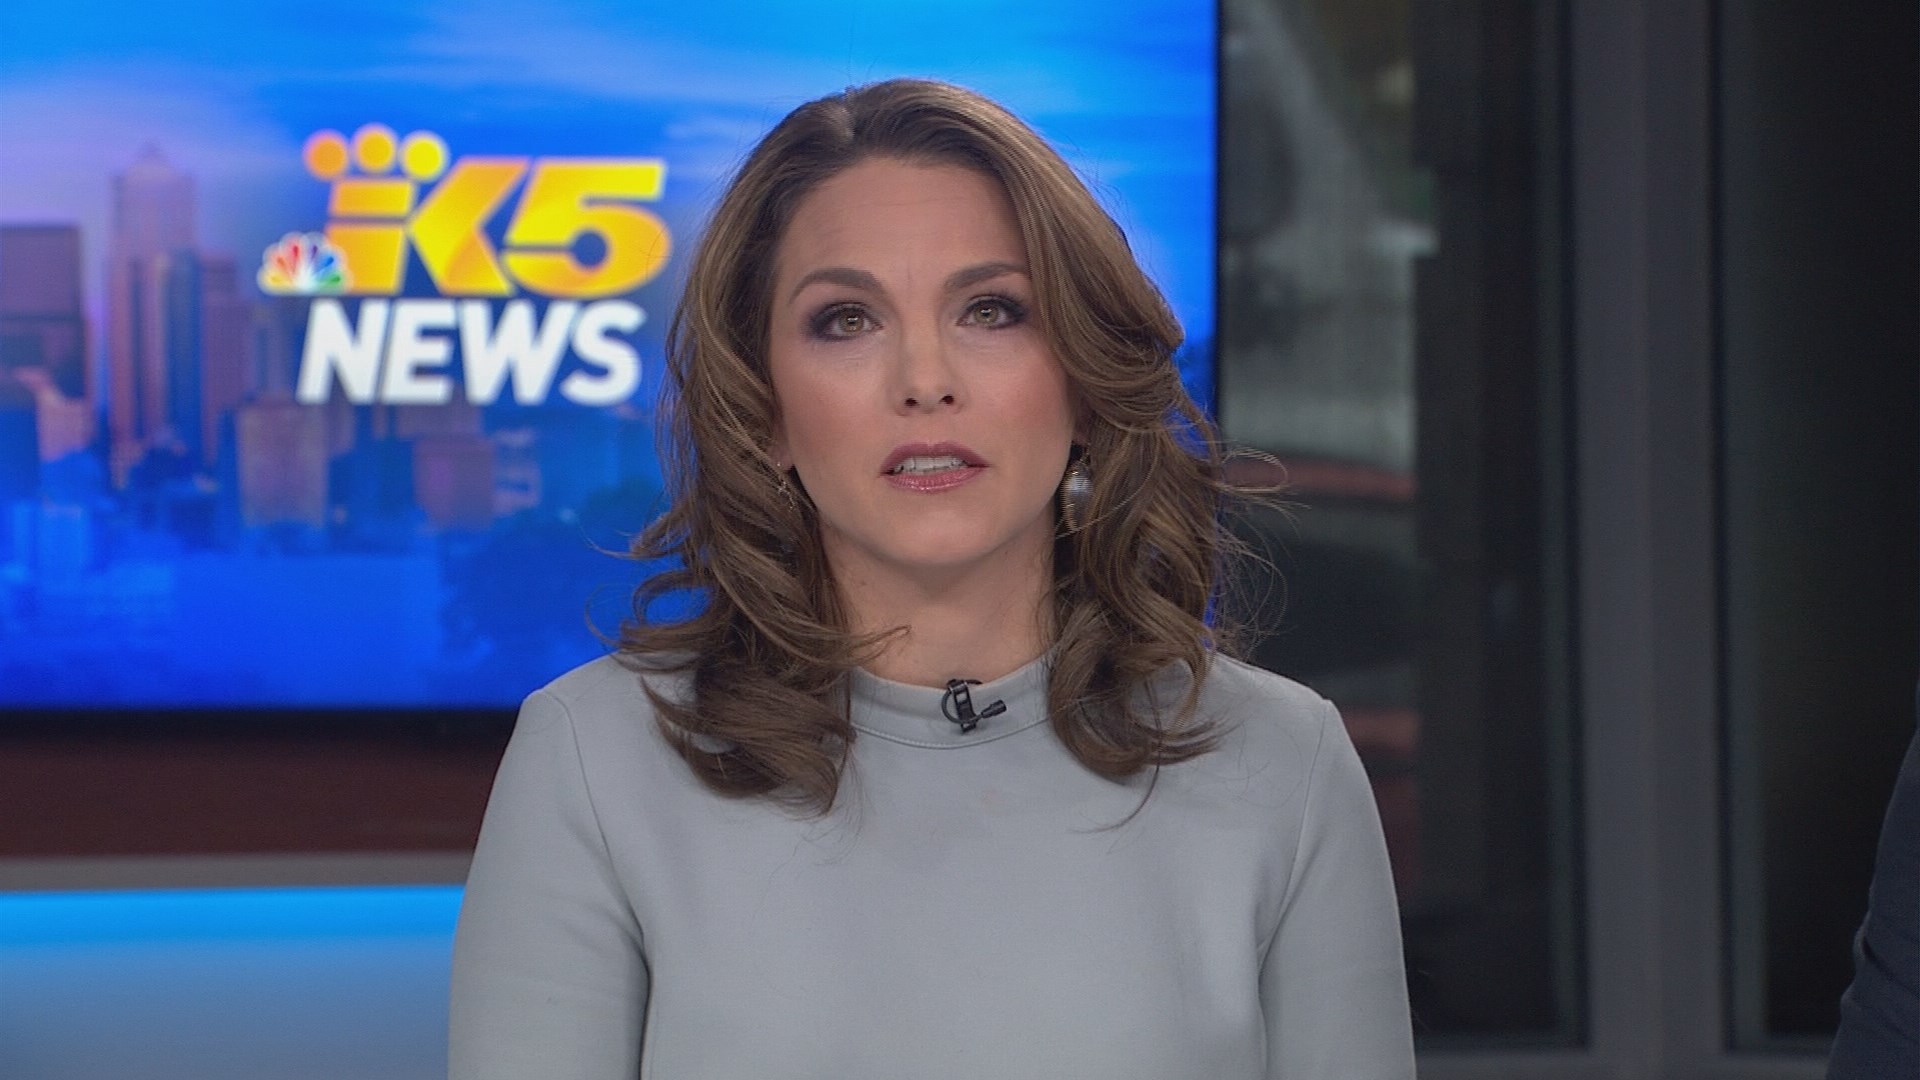 anchor sex personals Former anchor and legal analyst adrienne lawrence filed a sexual harassment and discrimination lawsuit against espn this weekend for incidents dating.